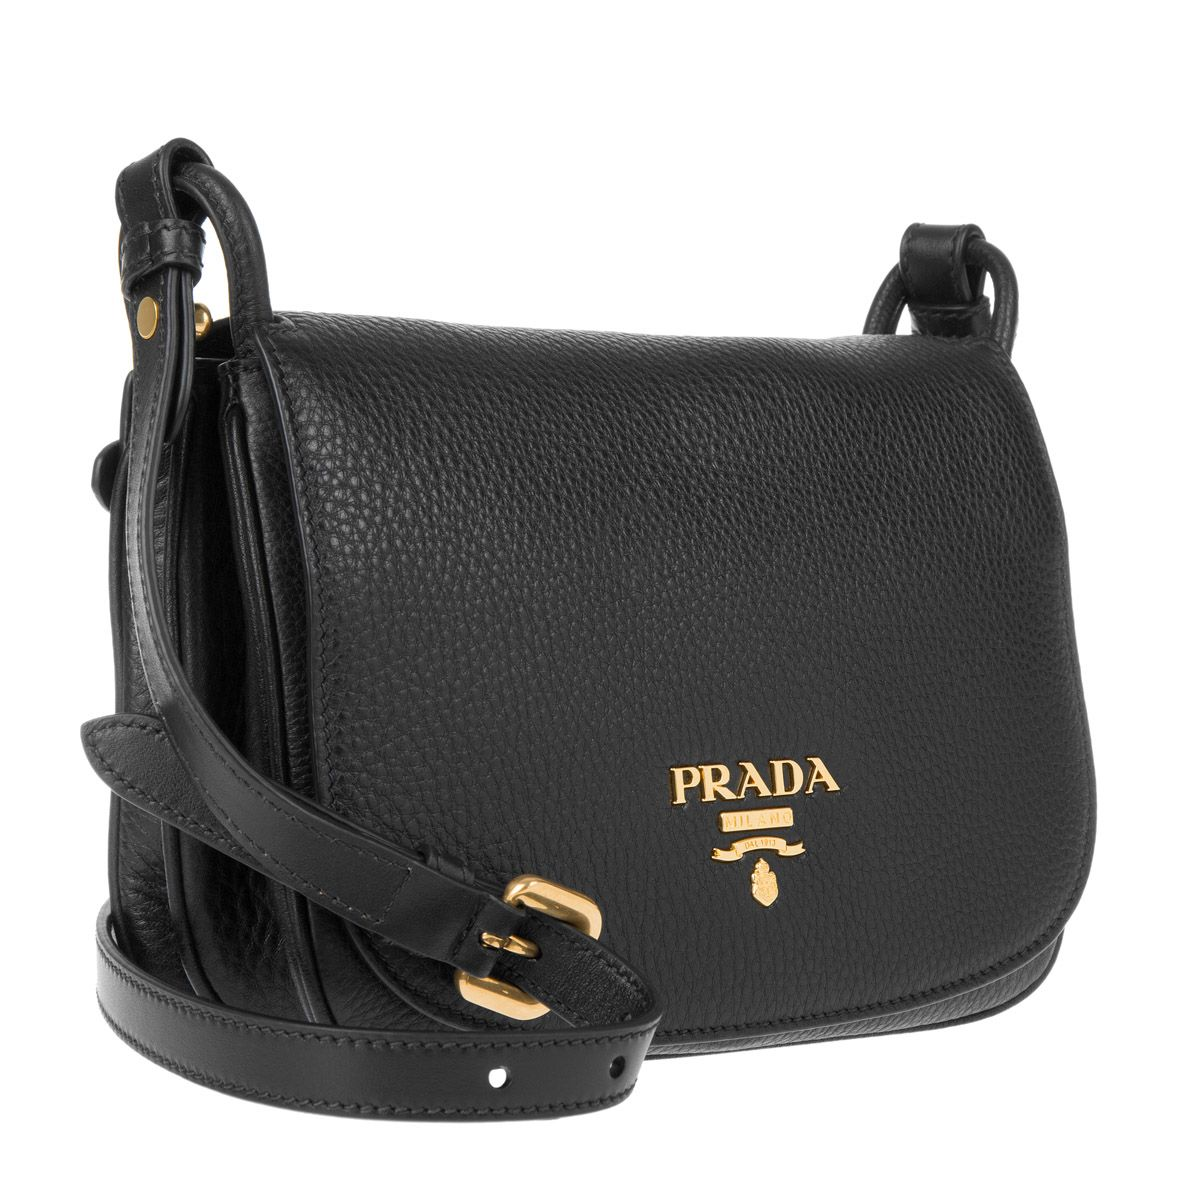 b4383f632cc6 Prada Vitello Daino Pattina Crossbody Bag Nero Elle bei Fashionette ...